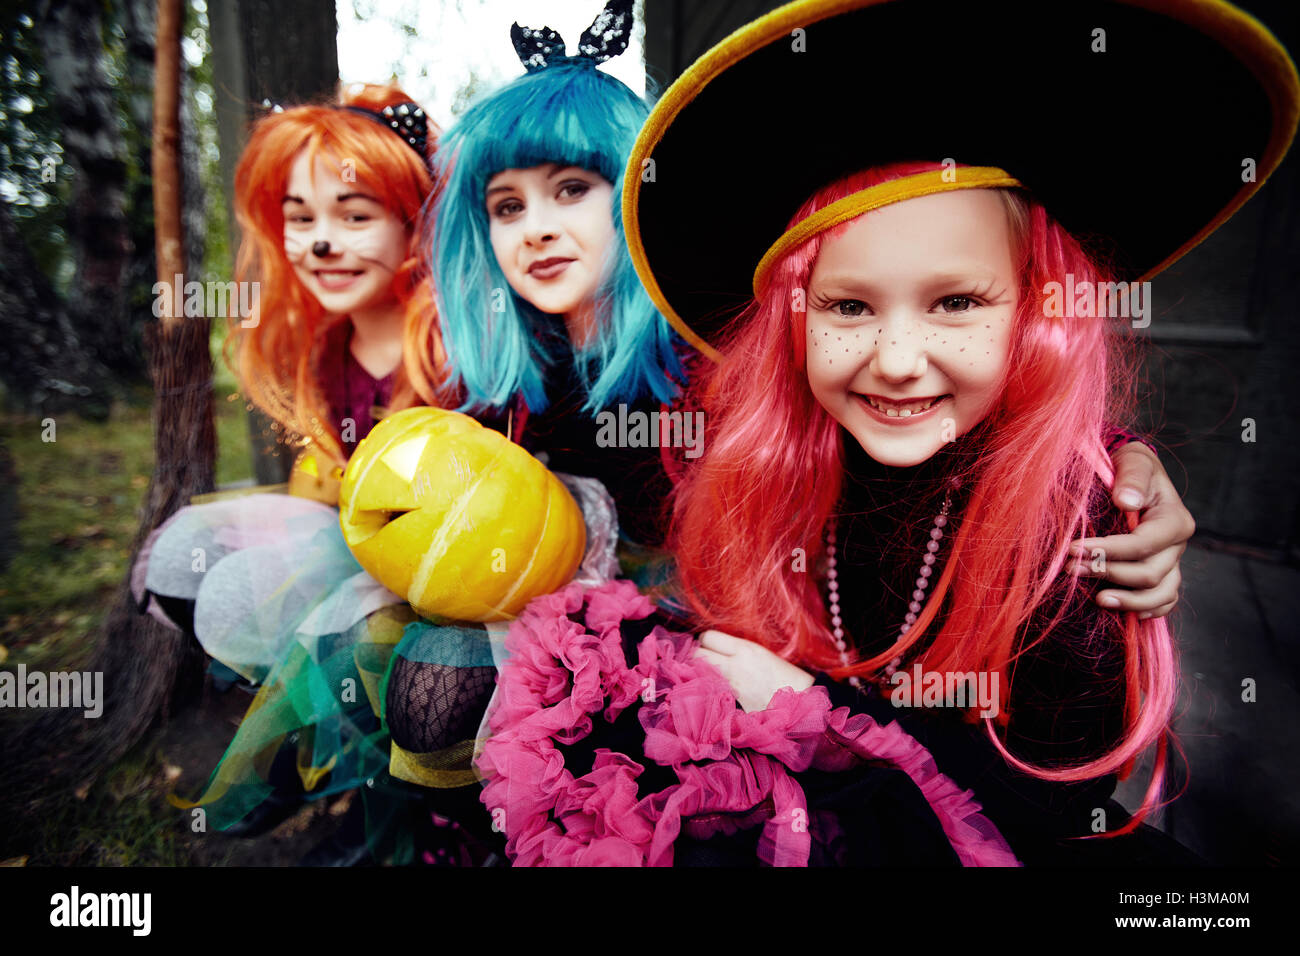 Adorable Girls In Halloween Costumes Looking At Camera